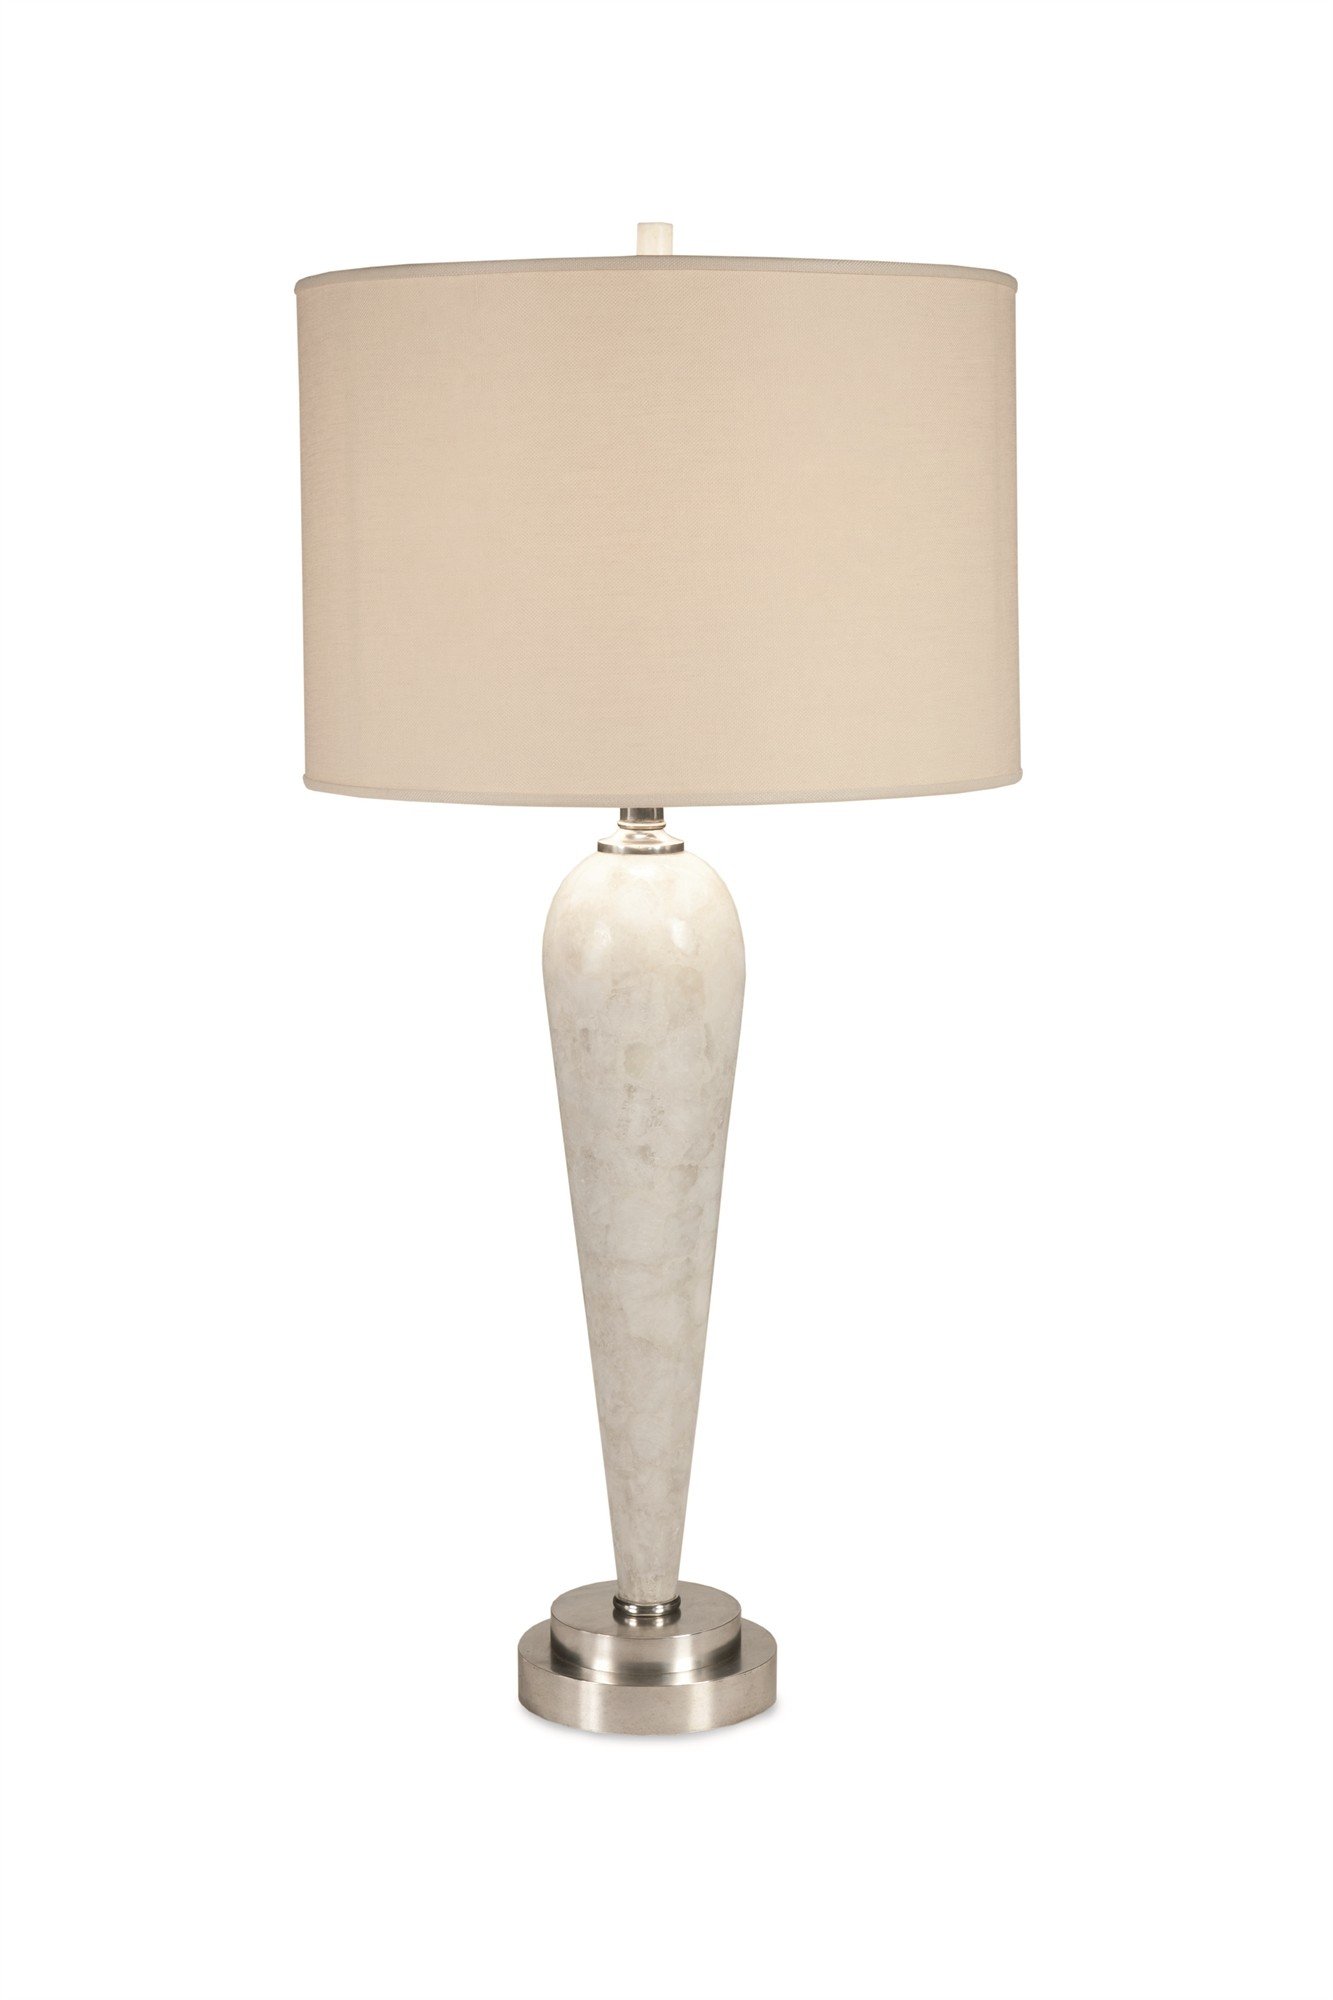 Verneuil Table Lamp